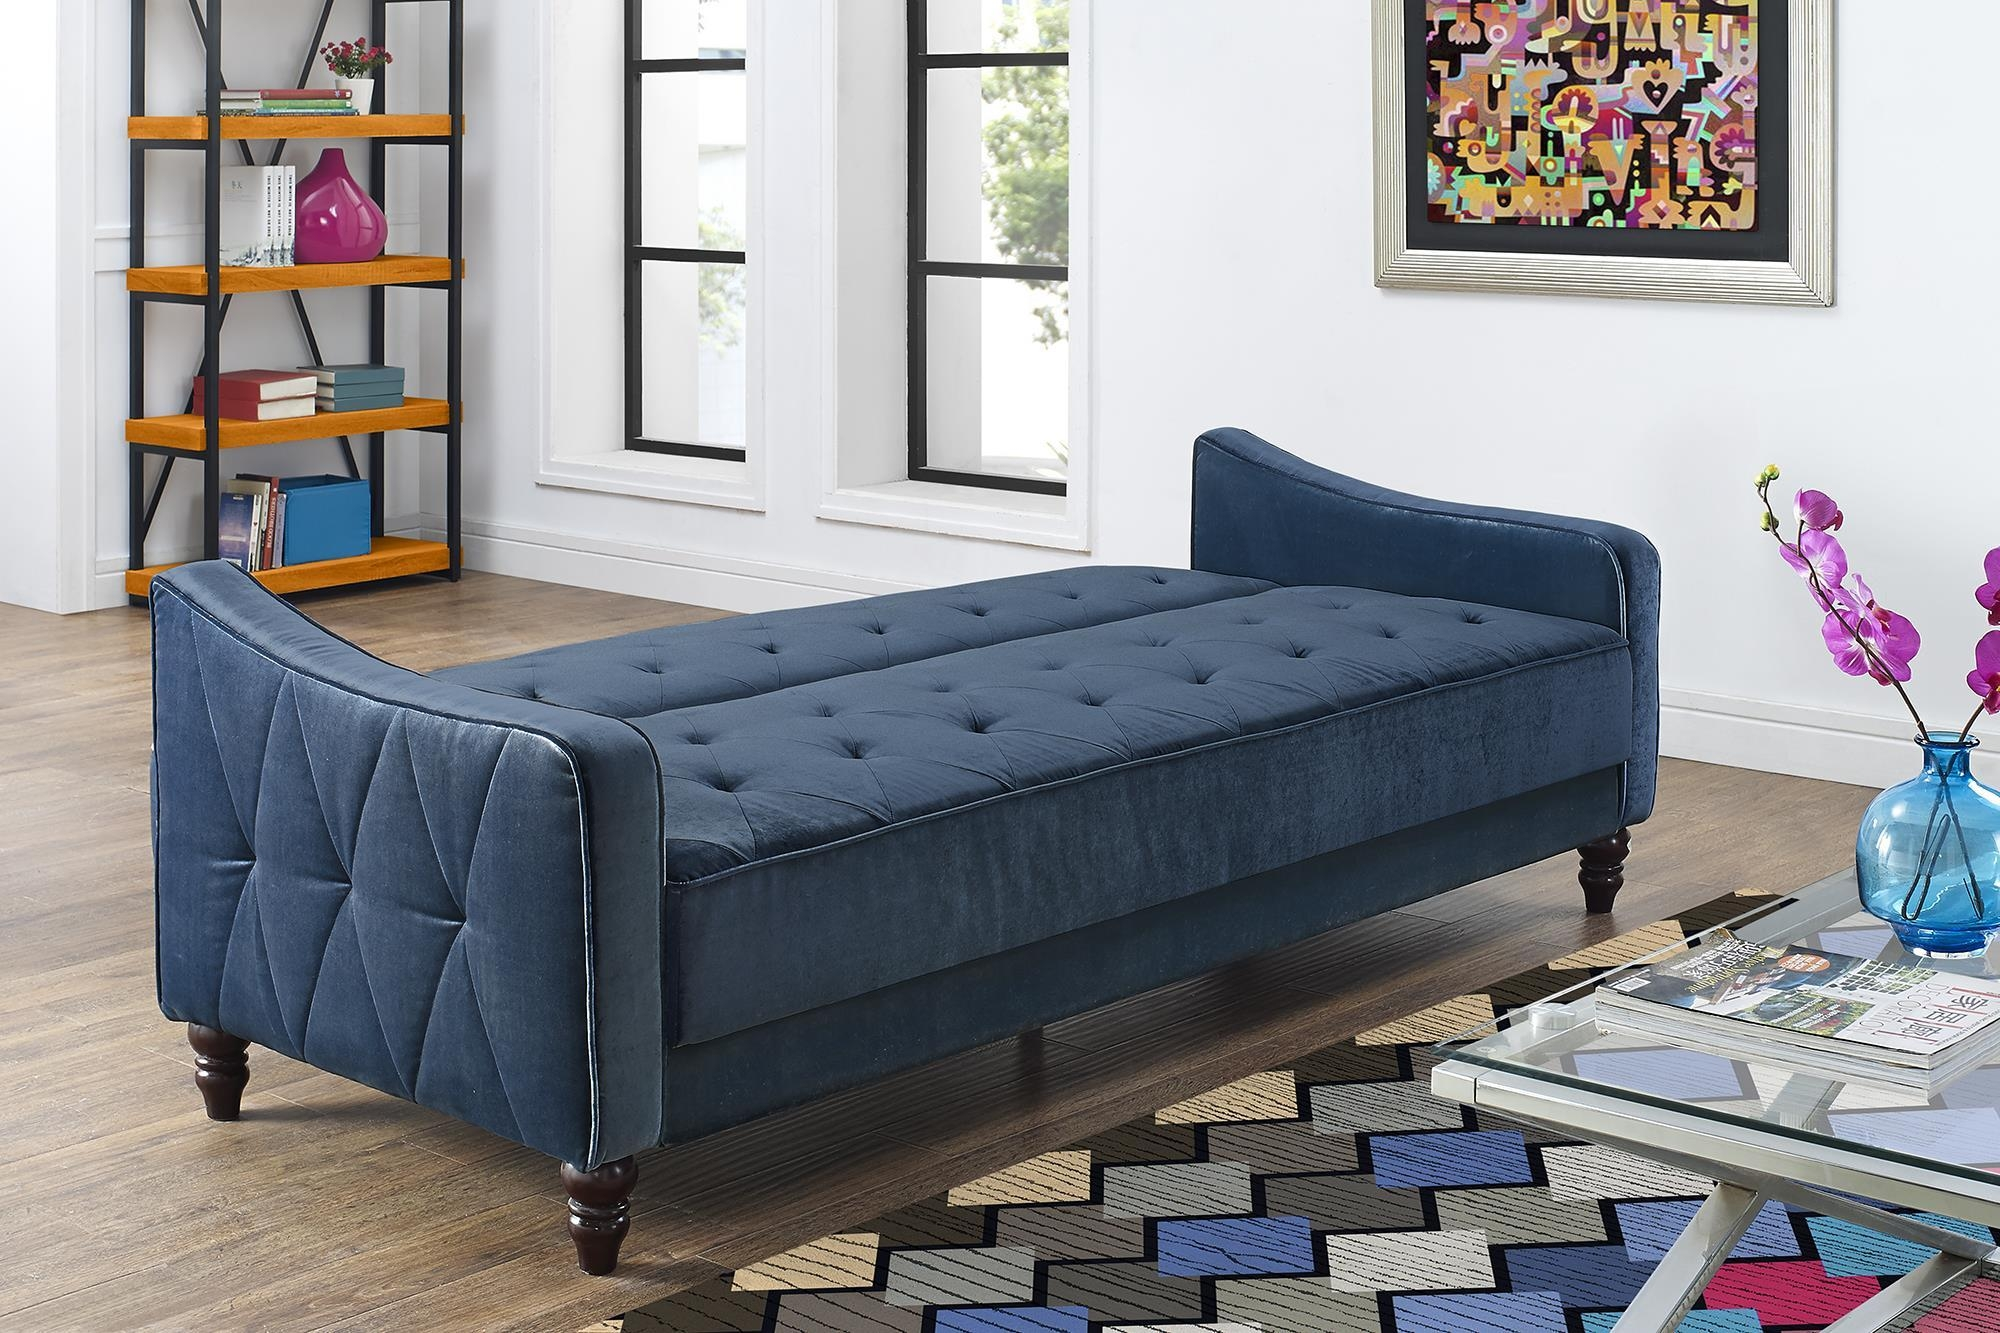 Furniture Amusing Walmart Sofas For Home Ideas Press Blue Tufted Pertaining To Blue Tufted Sofas (View 19 of 22)